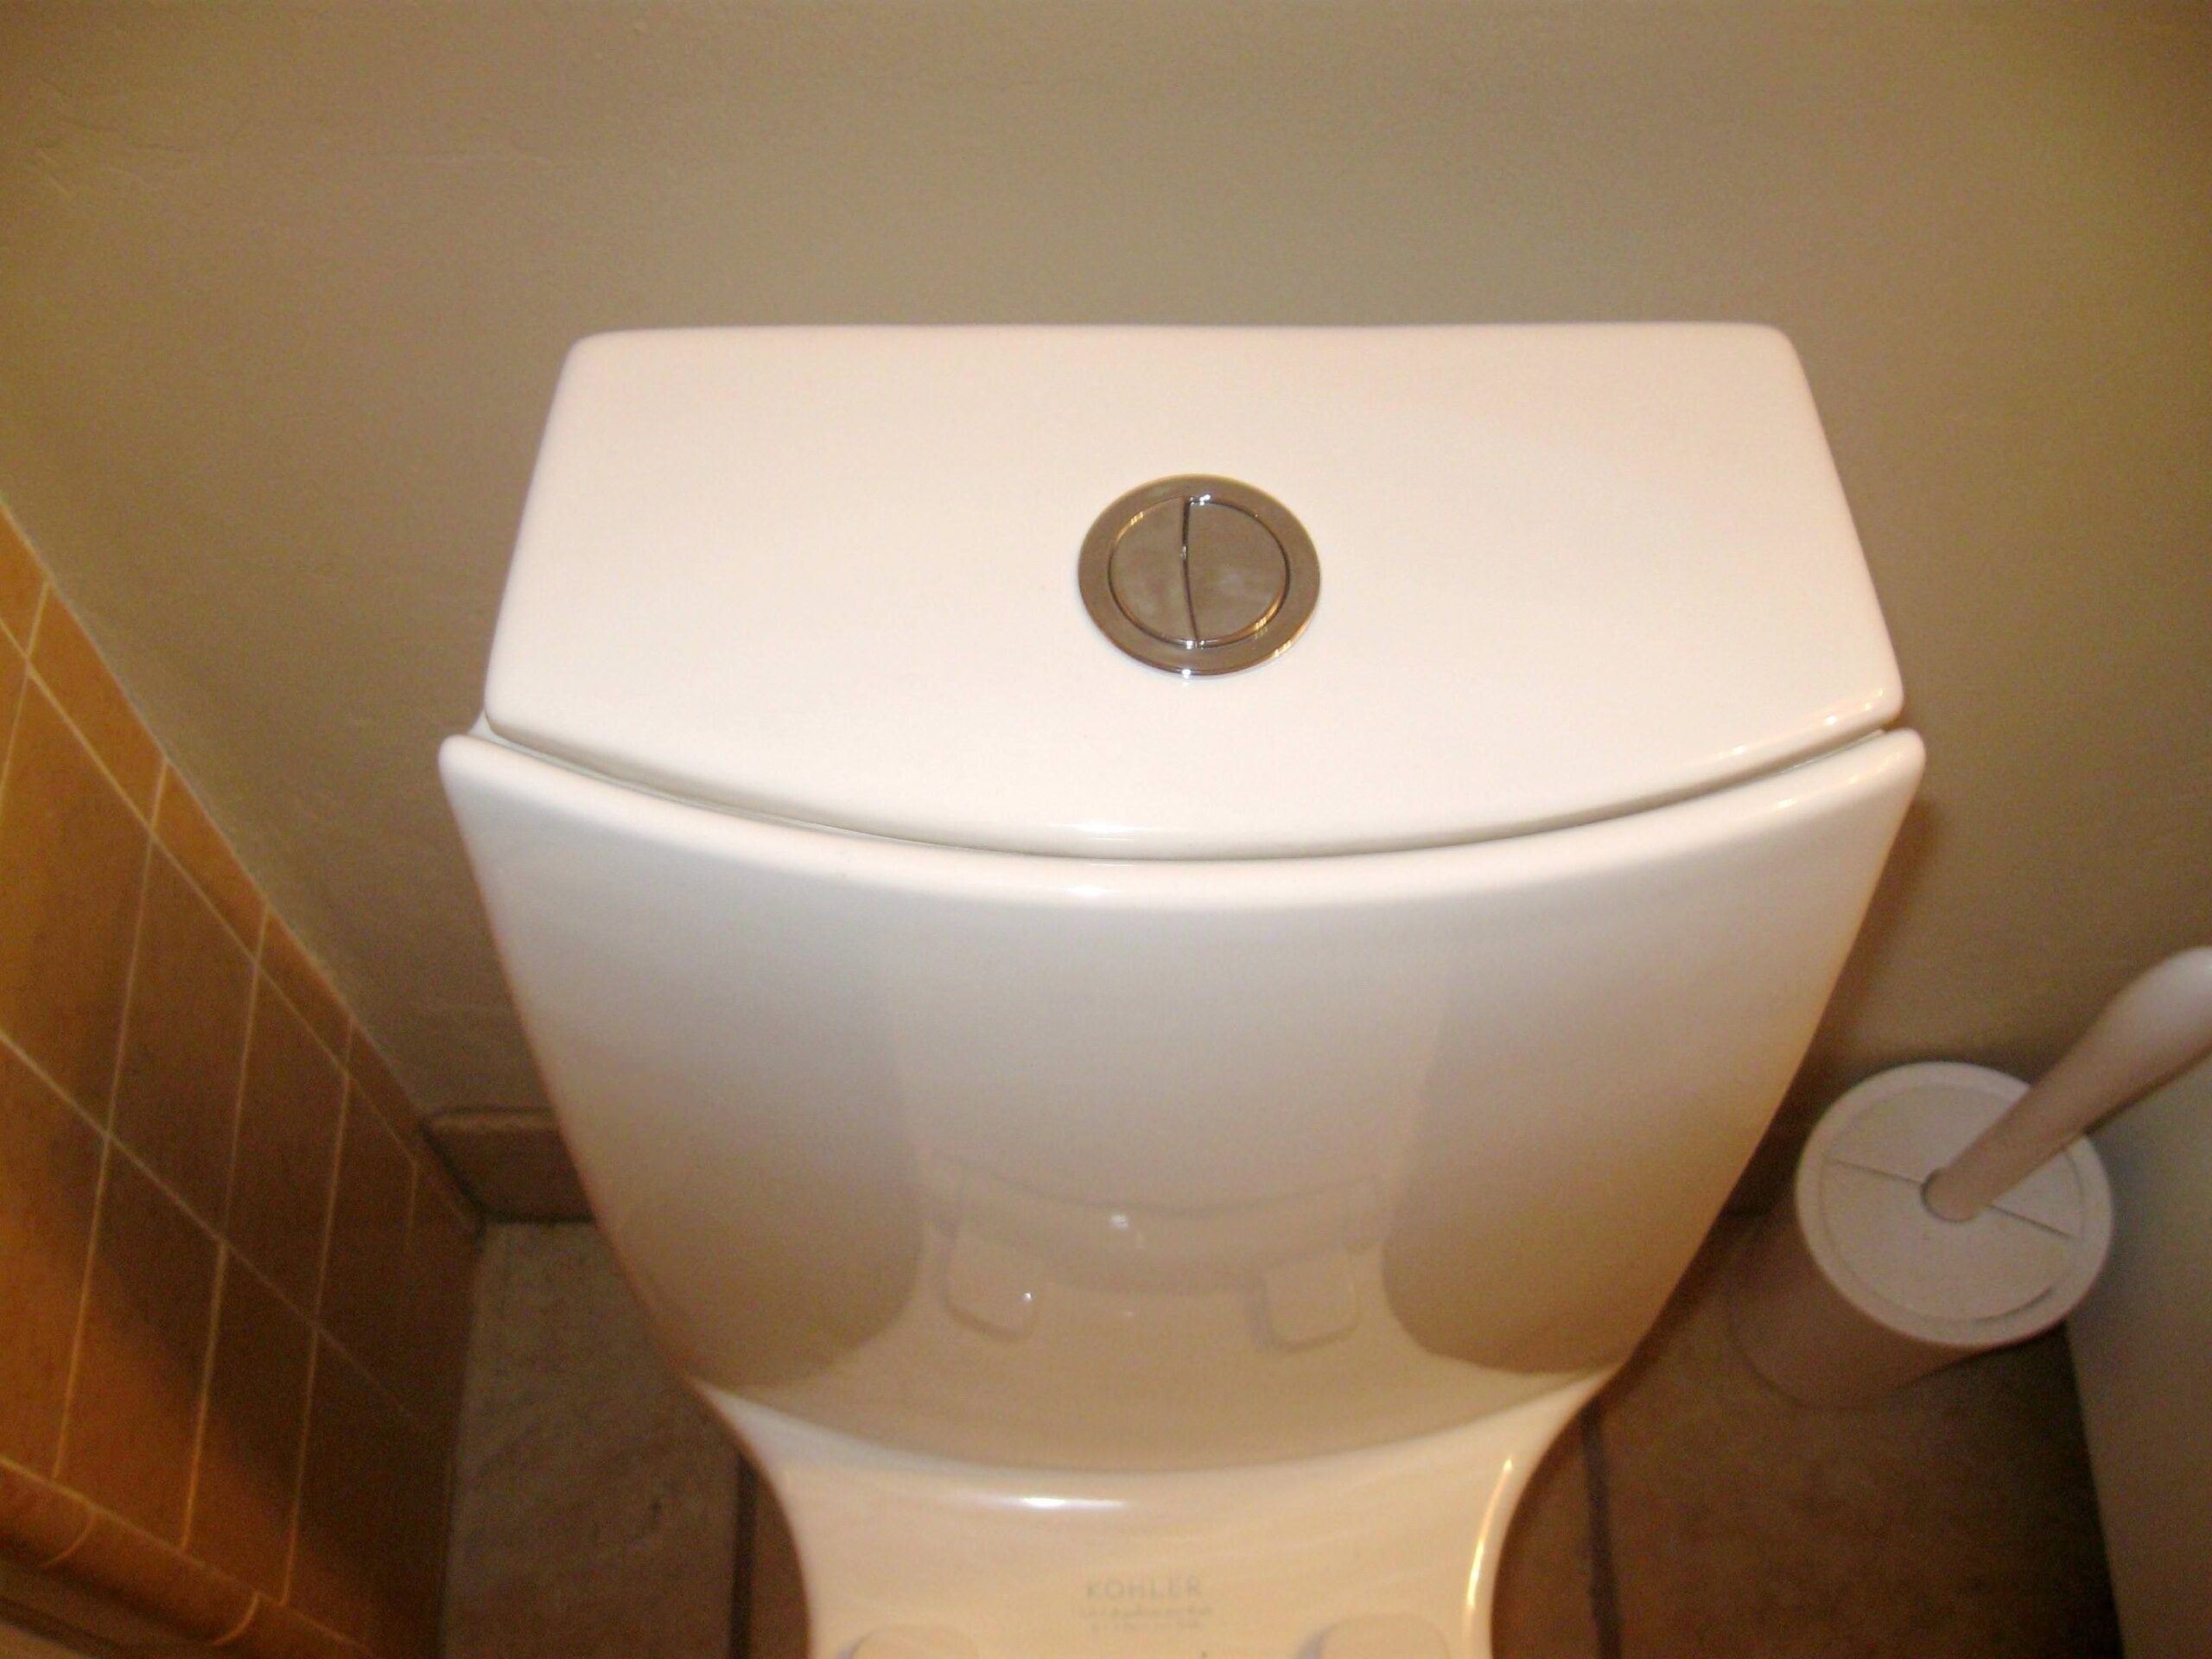 Dual-flush toilets are wasting more water than they save, says U.K. water utility